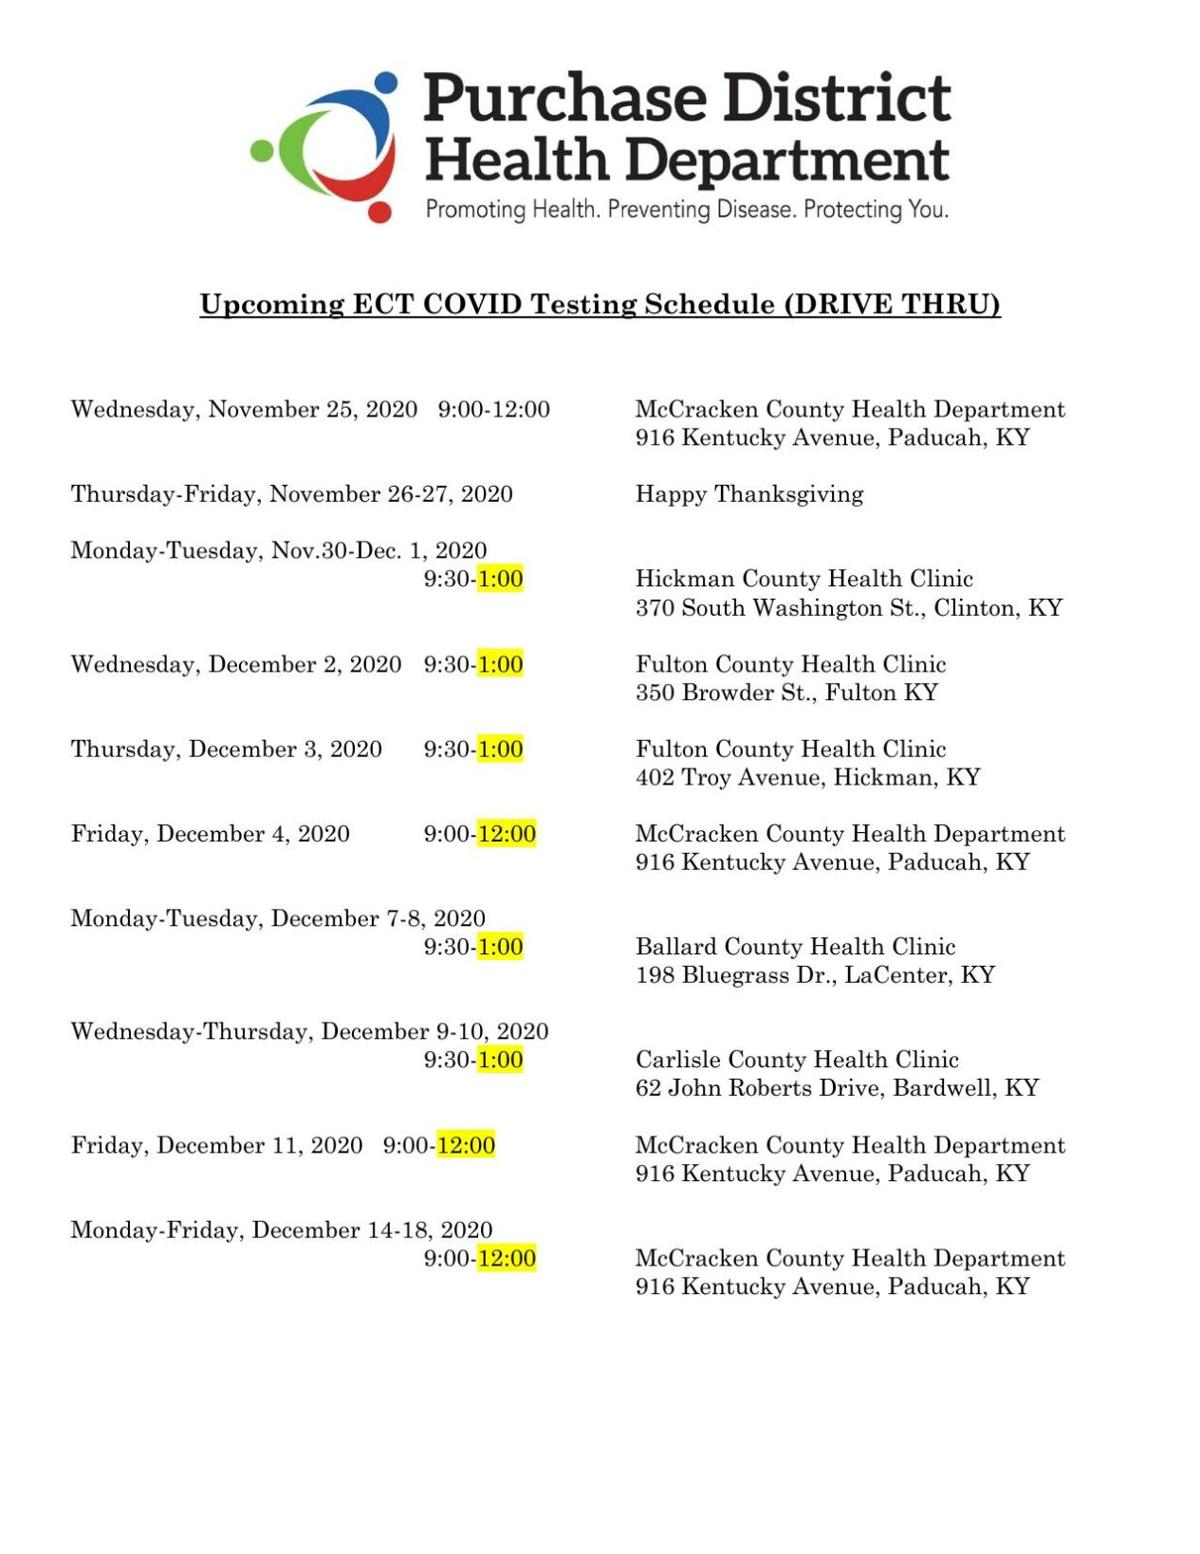 COVID-19 testing schedule Purchase District Health Department